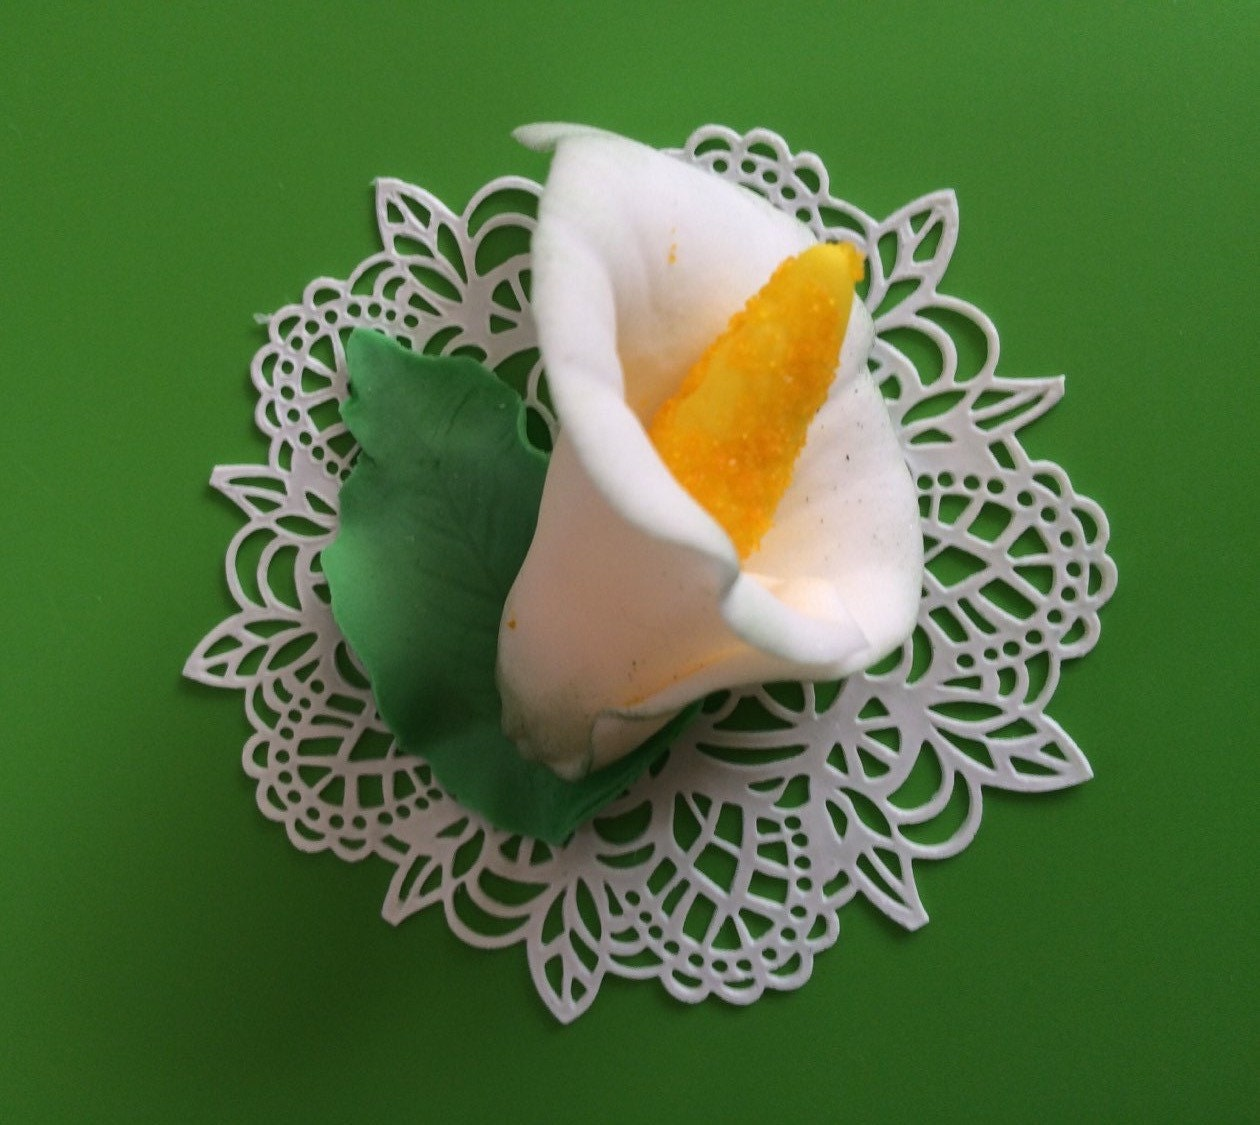 fondant flowers 36pcs cake lace and Calla lily edible flowers